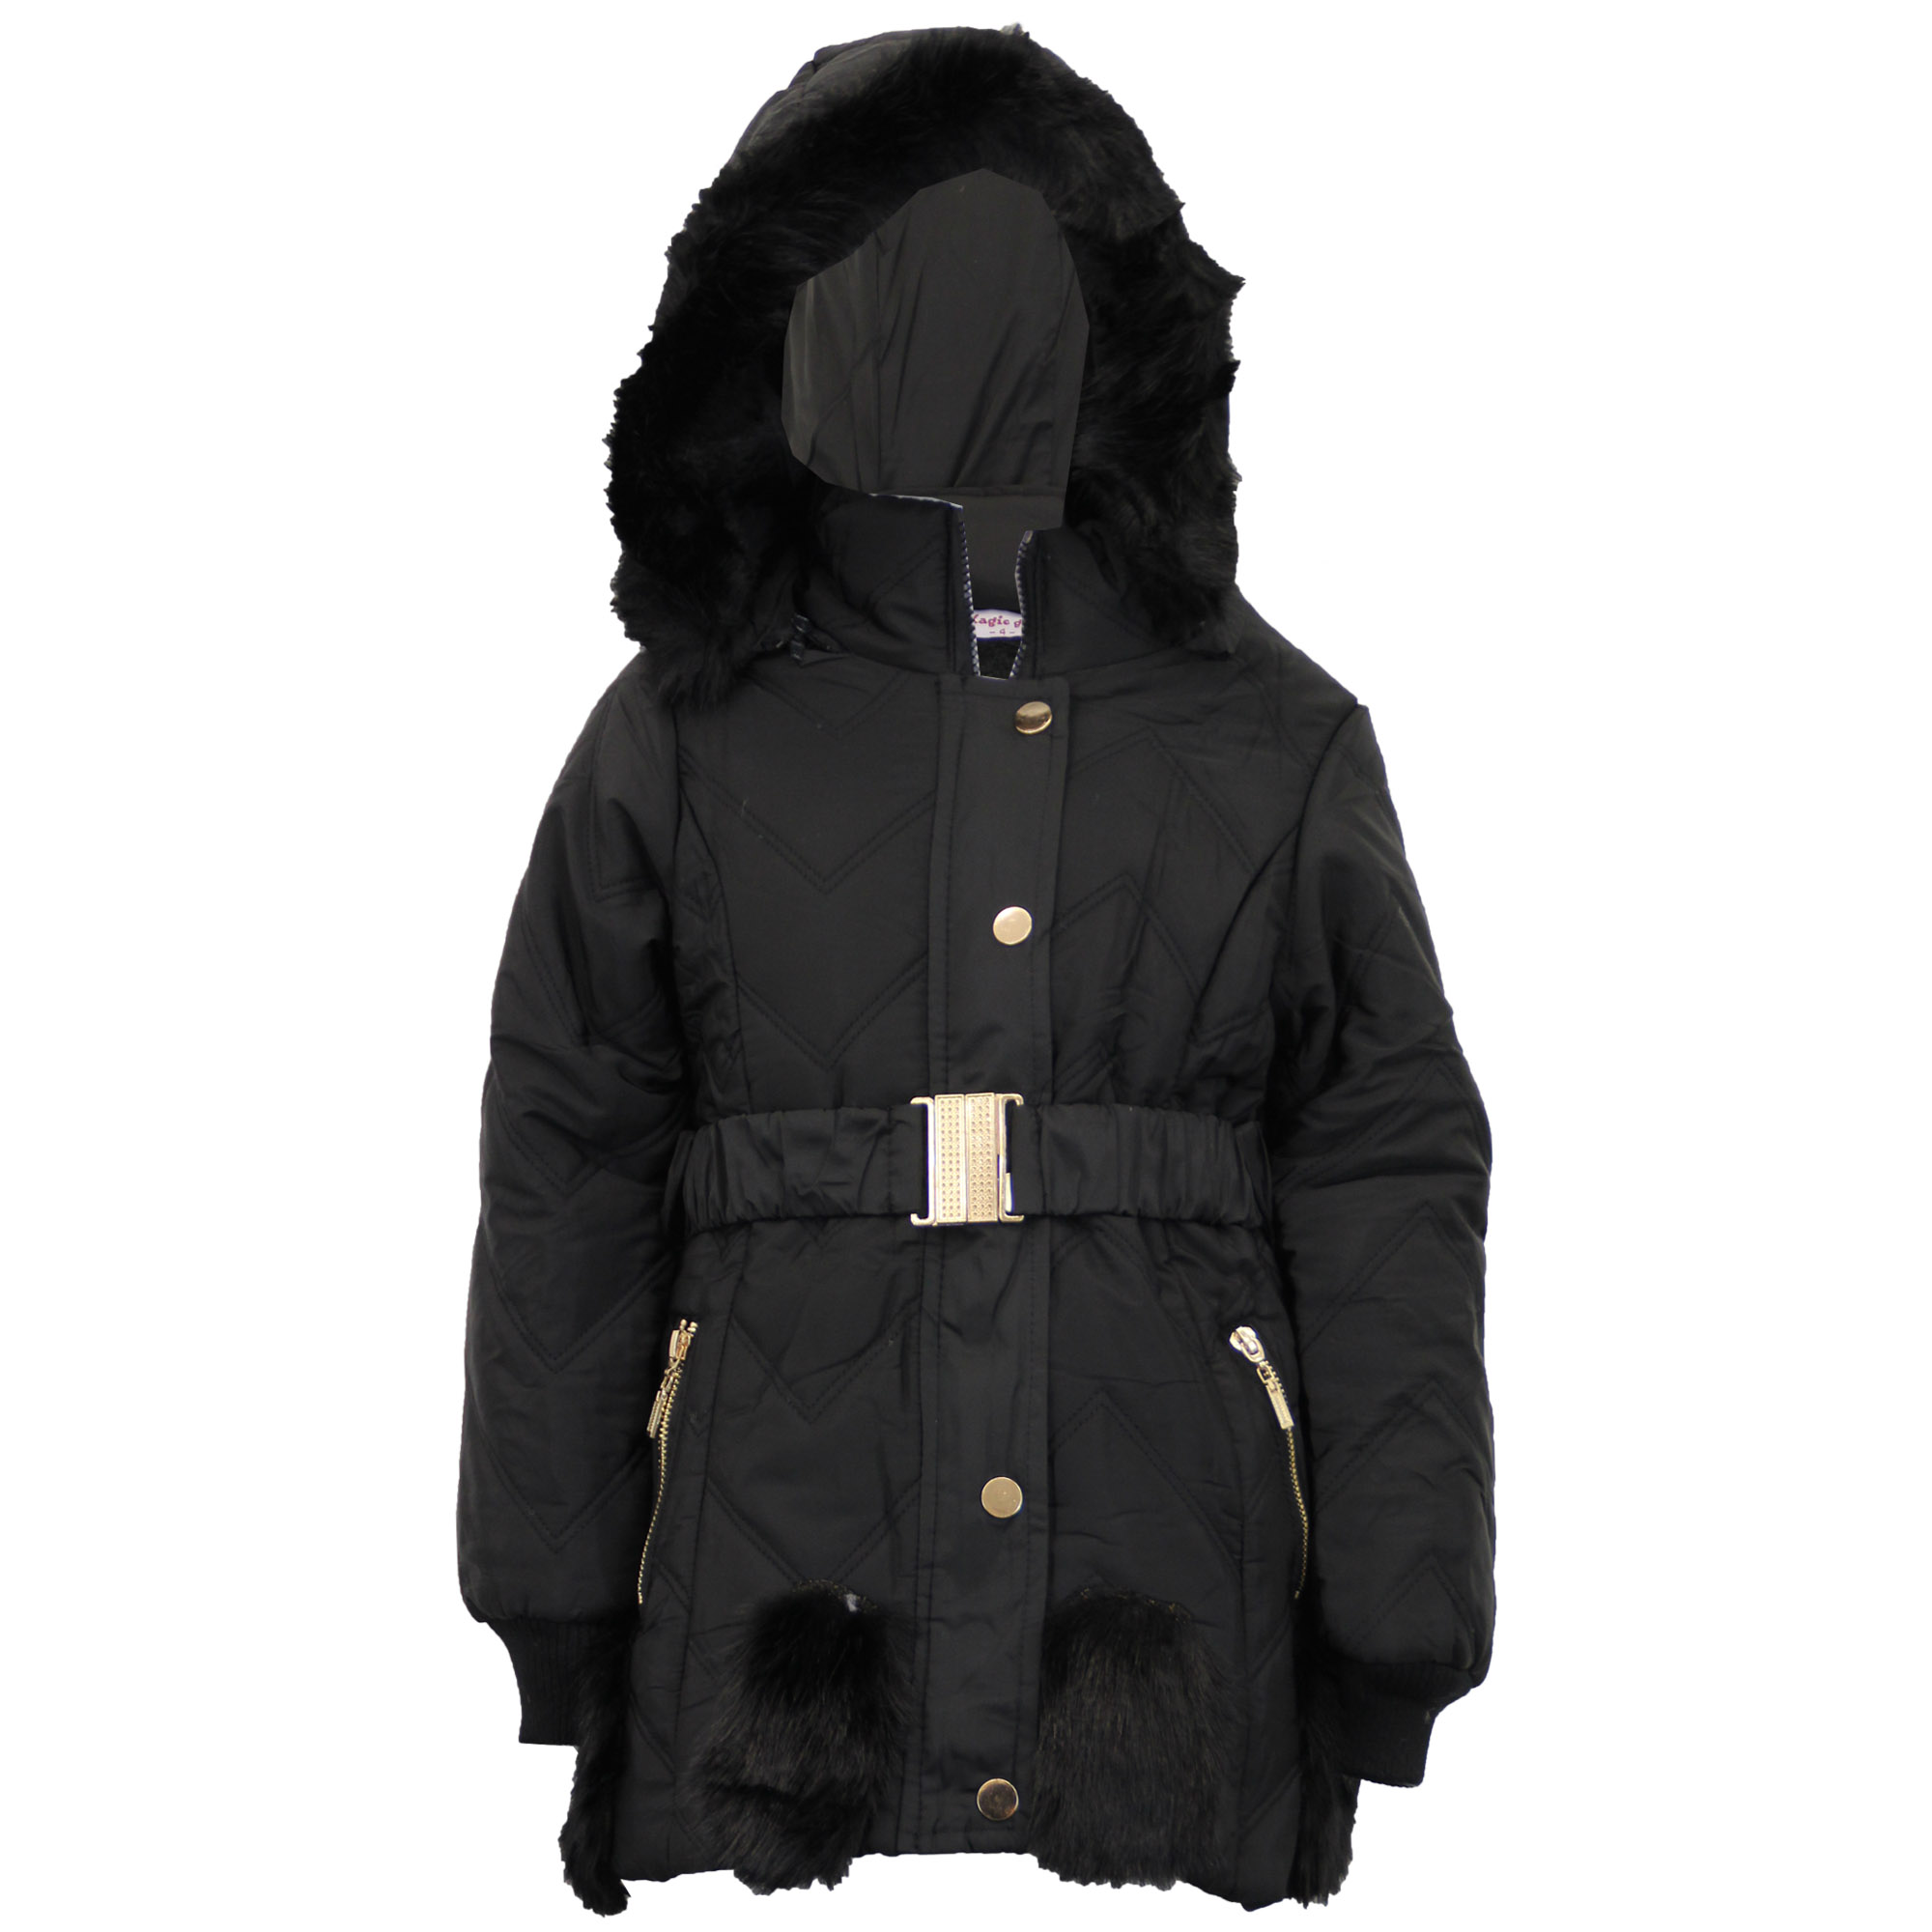 quilted coat mens hooded full jacket itm zip size black quilt ralph new xl polo lauren